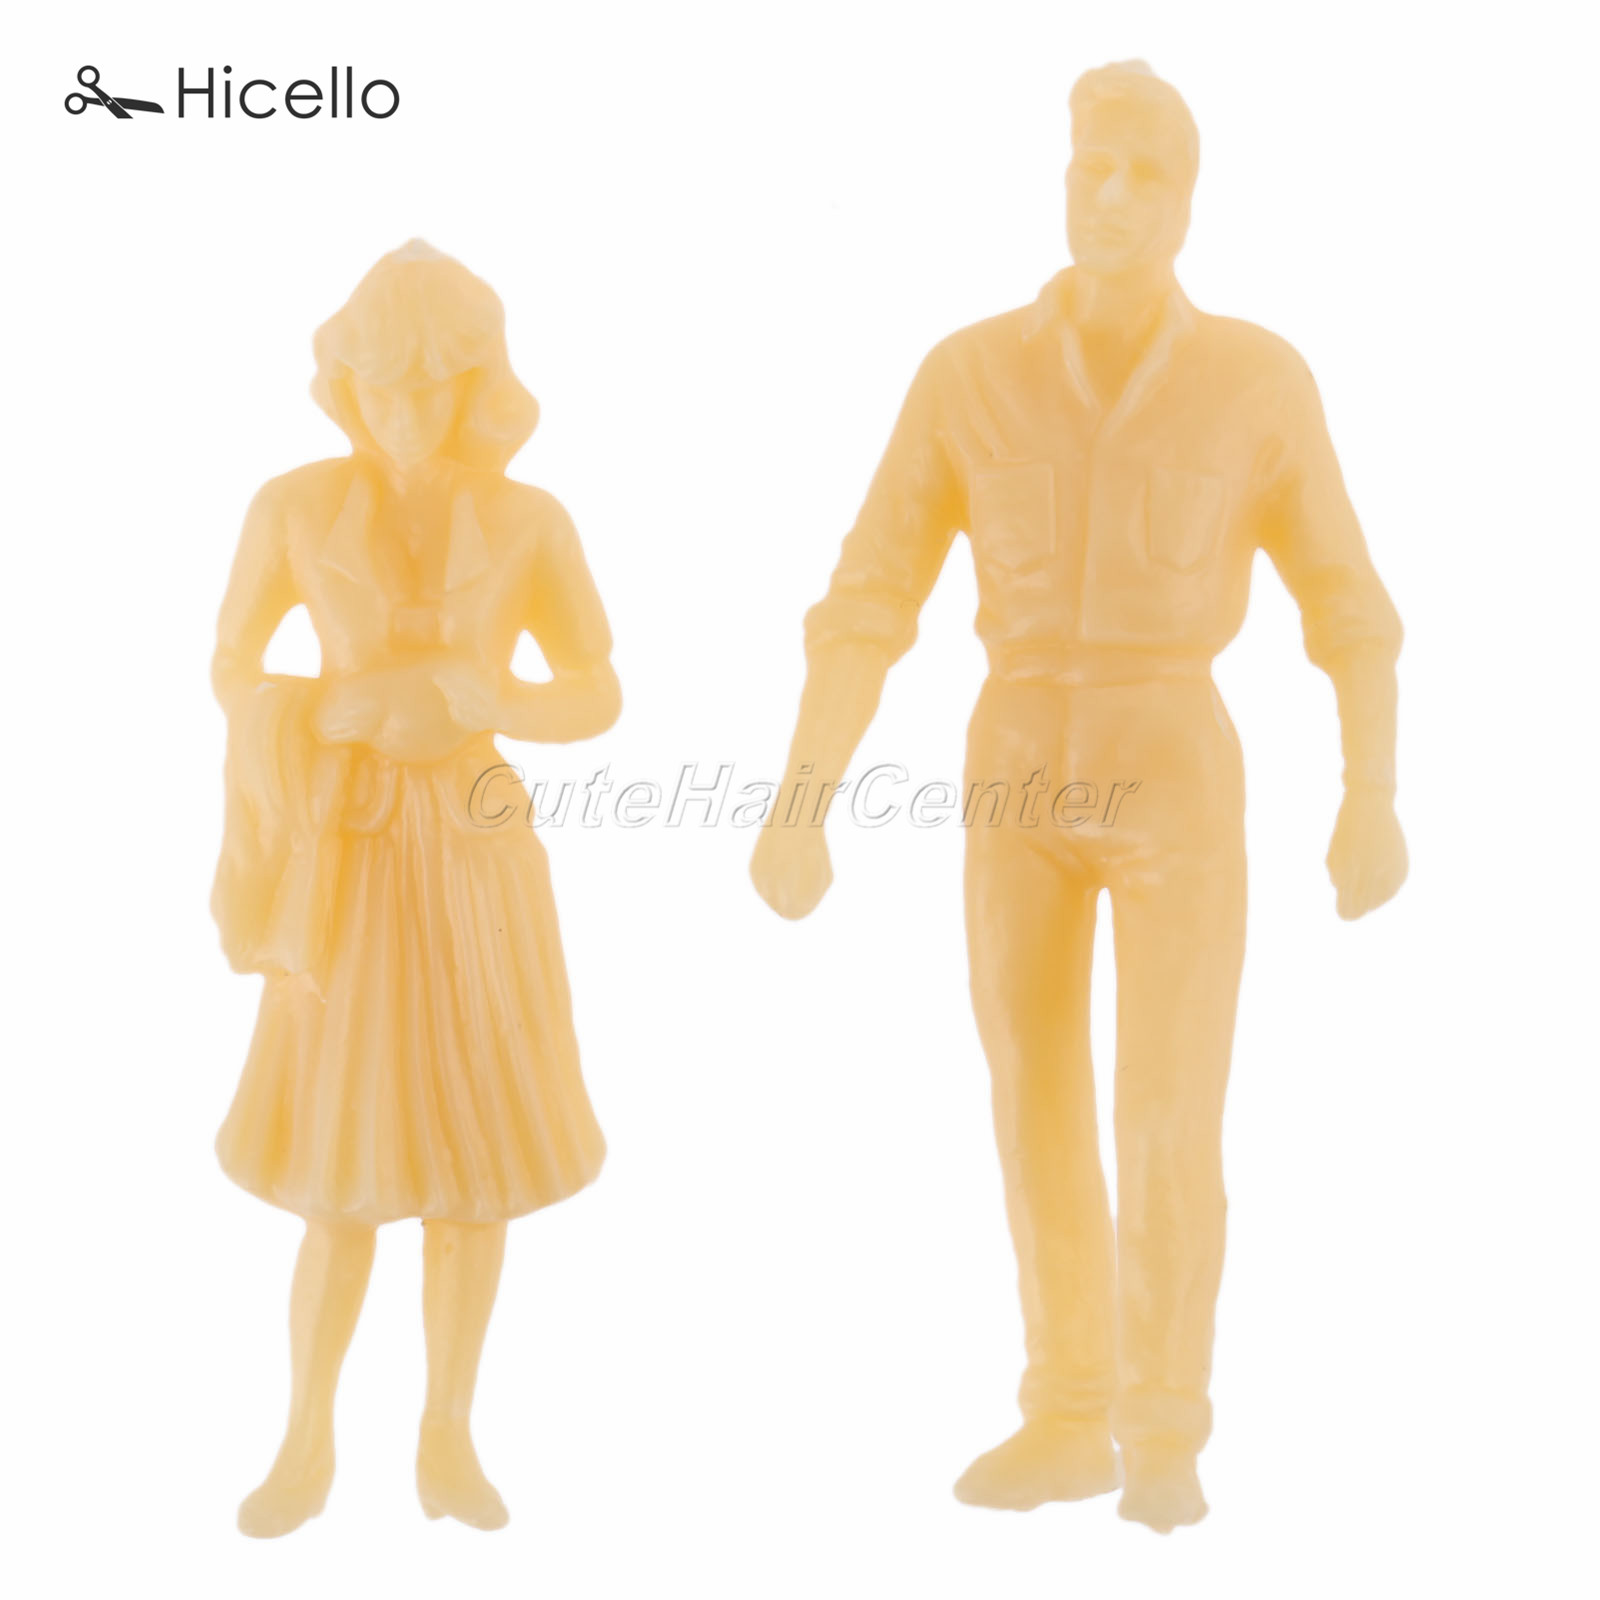 50pcs Model People Scale Skin color 36mm Figures Passenegers Train Scenery 1:<font><b>50</b></font> Scene Simulation Party Decoration image